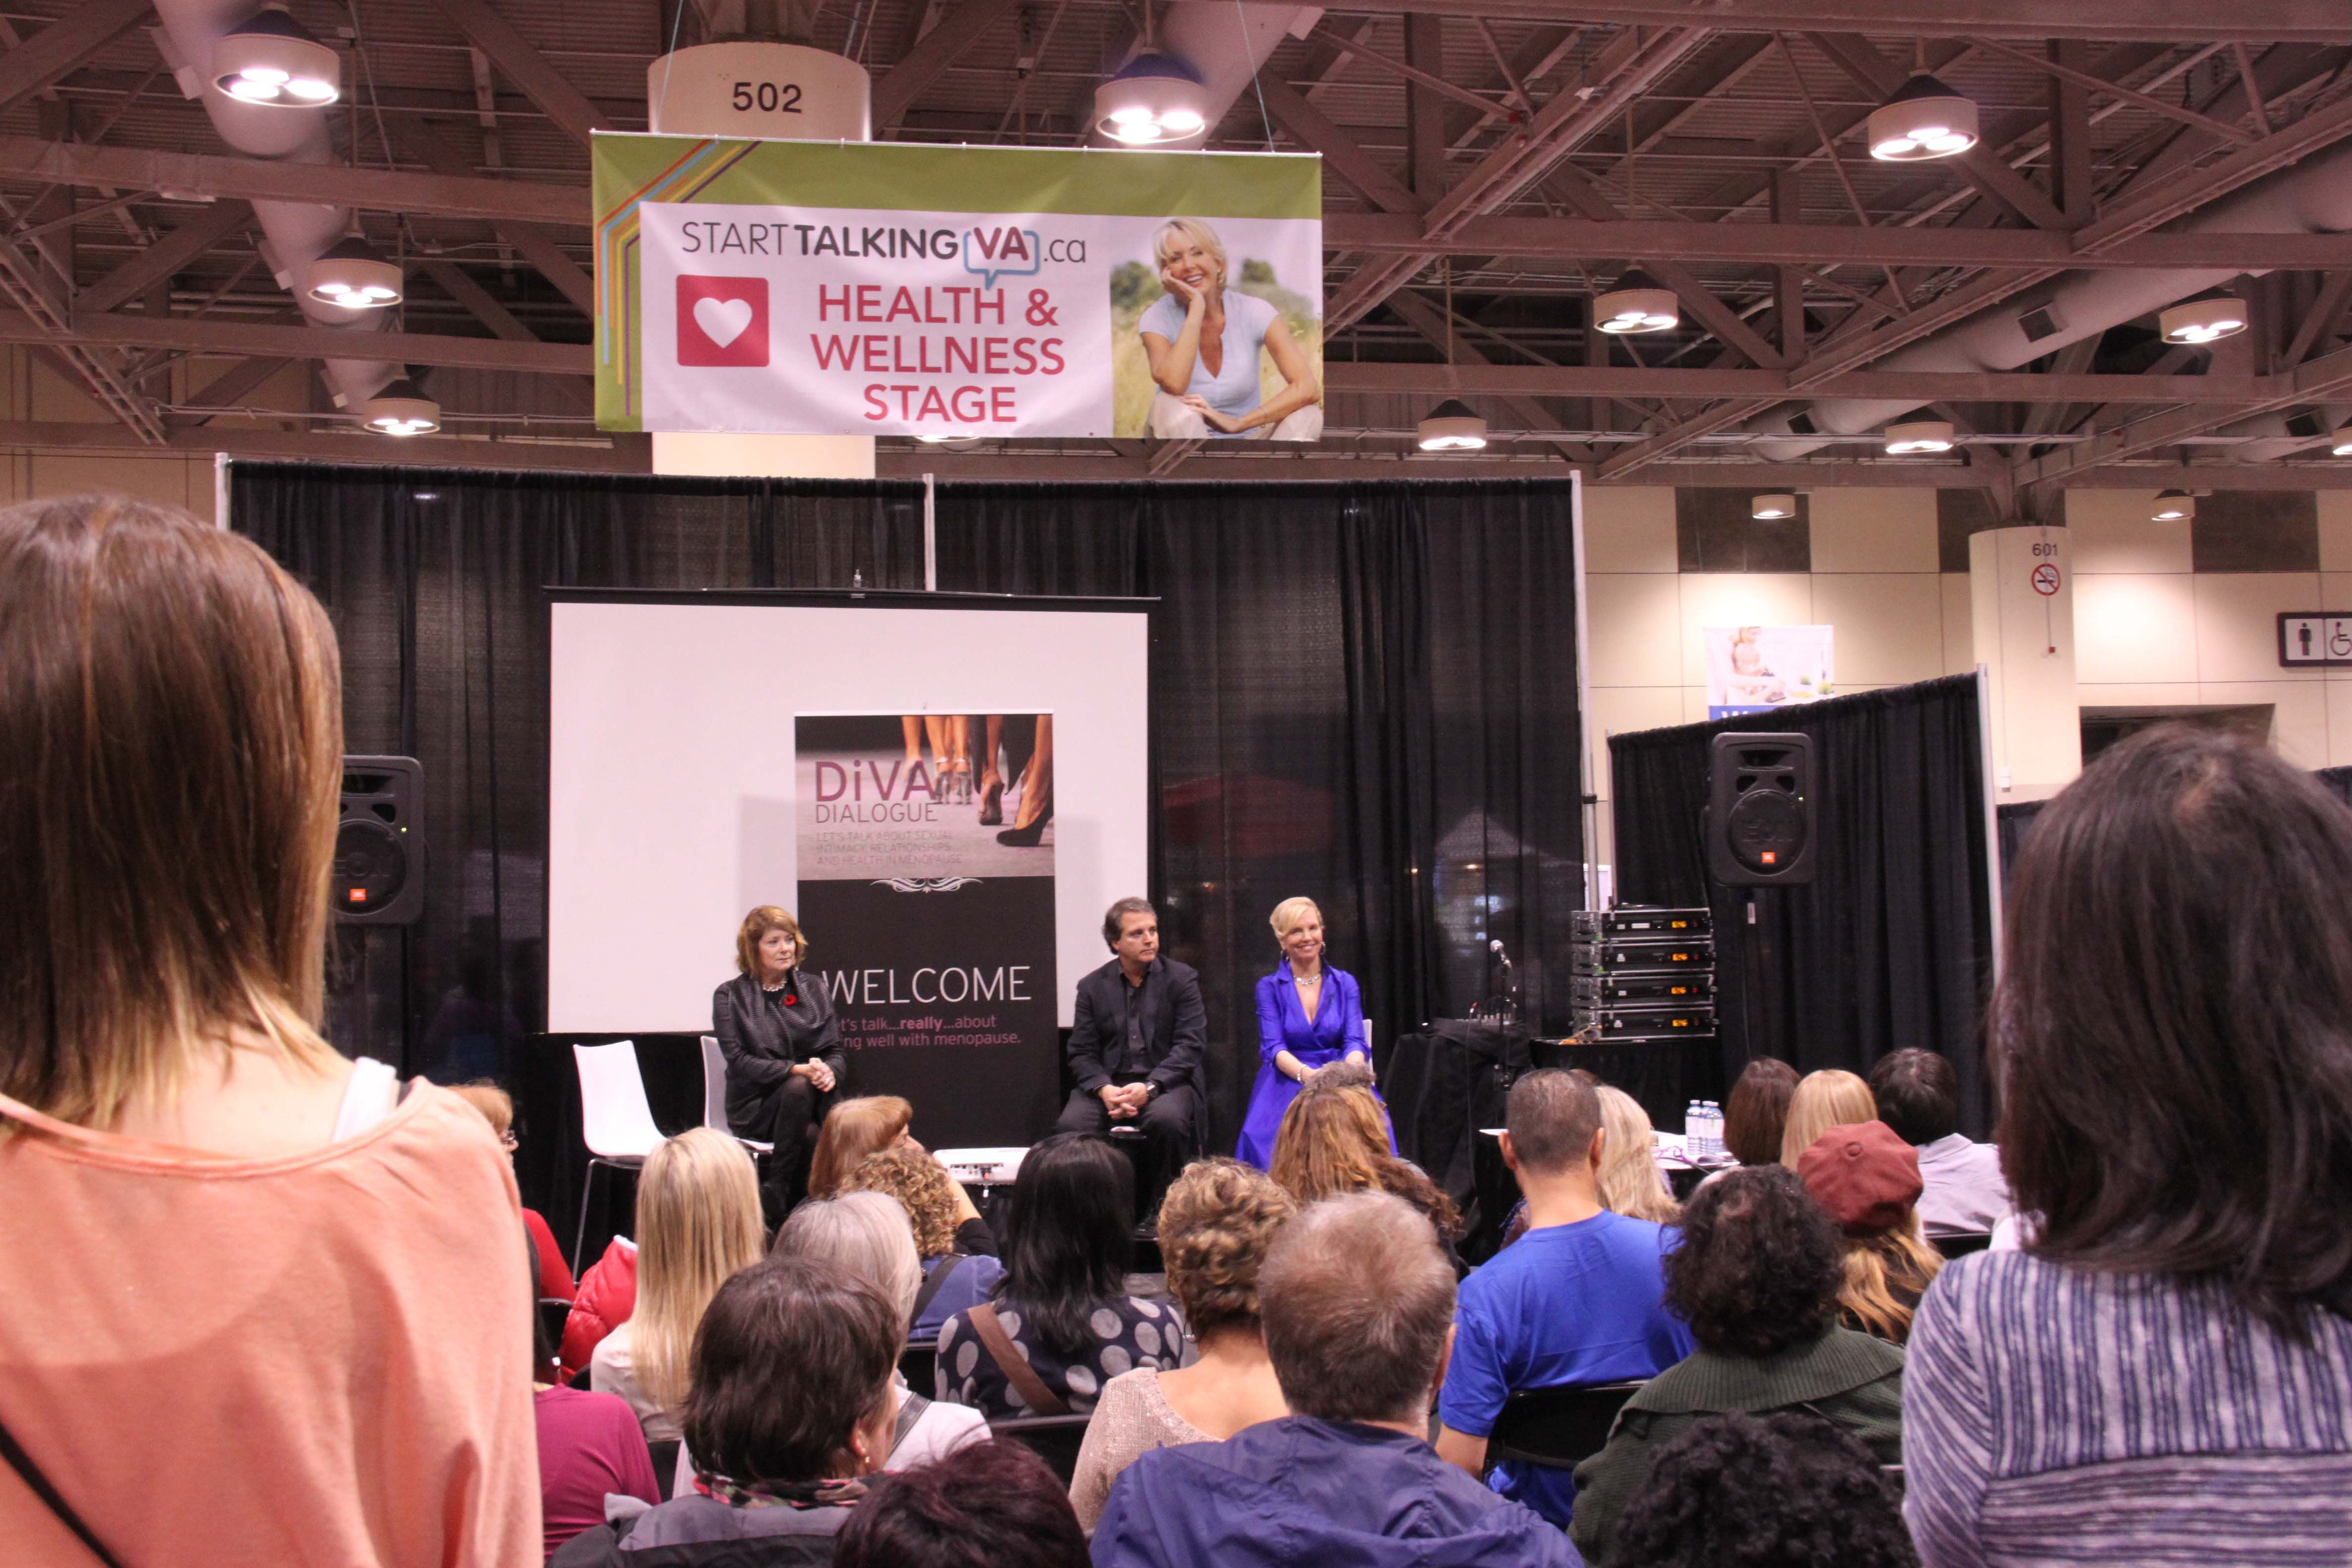 #StartTalkingVA.ca #health and #wellness stage DiVA dialouge panel with experts #nwstoronto